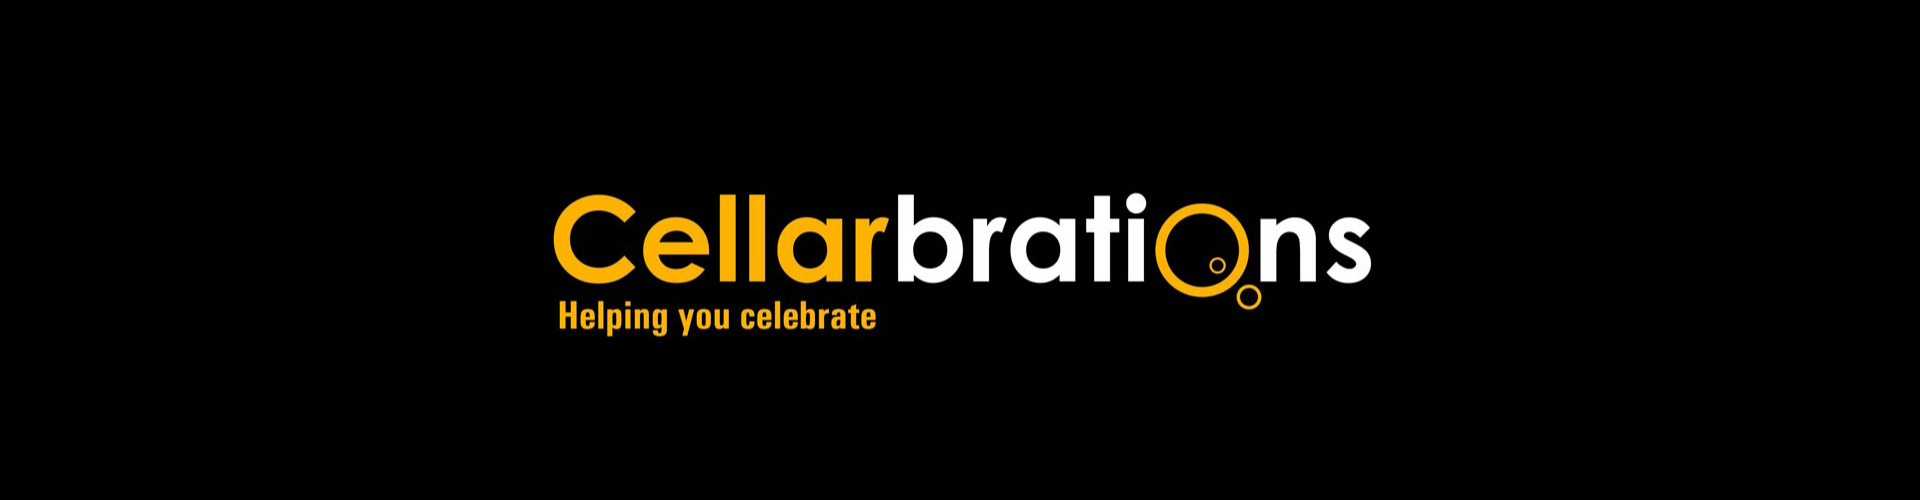 Cellarbrations - Page Banner